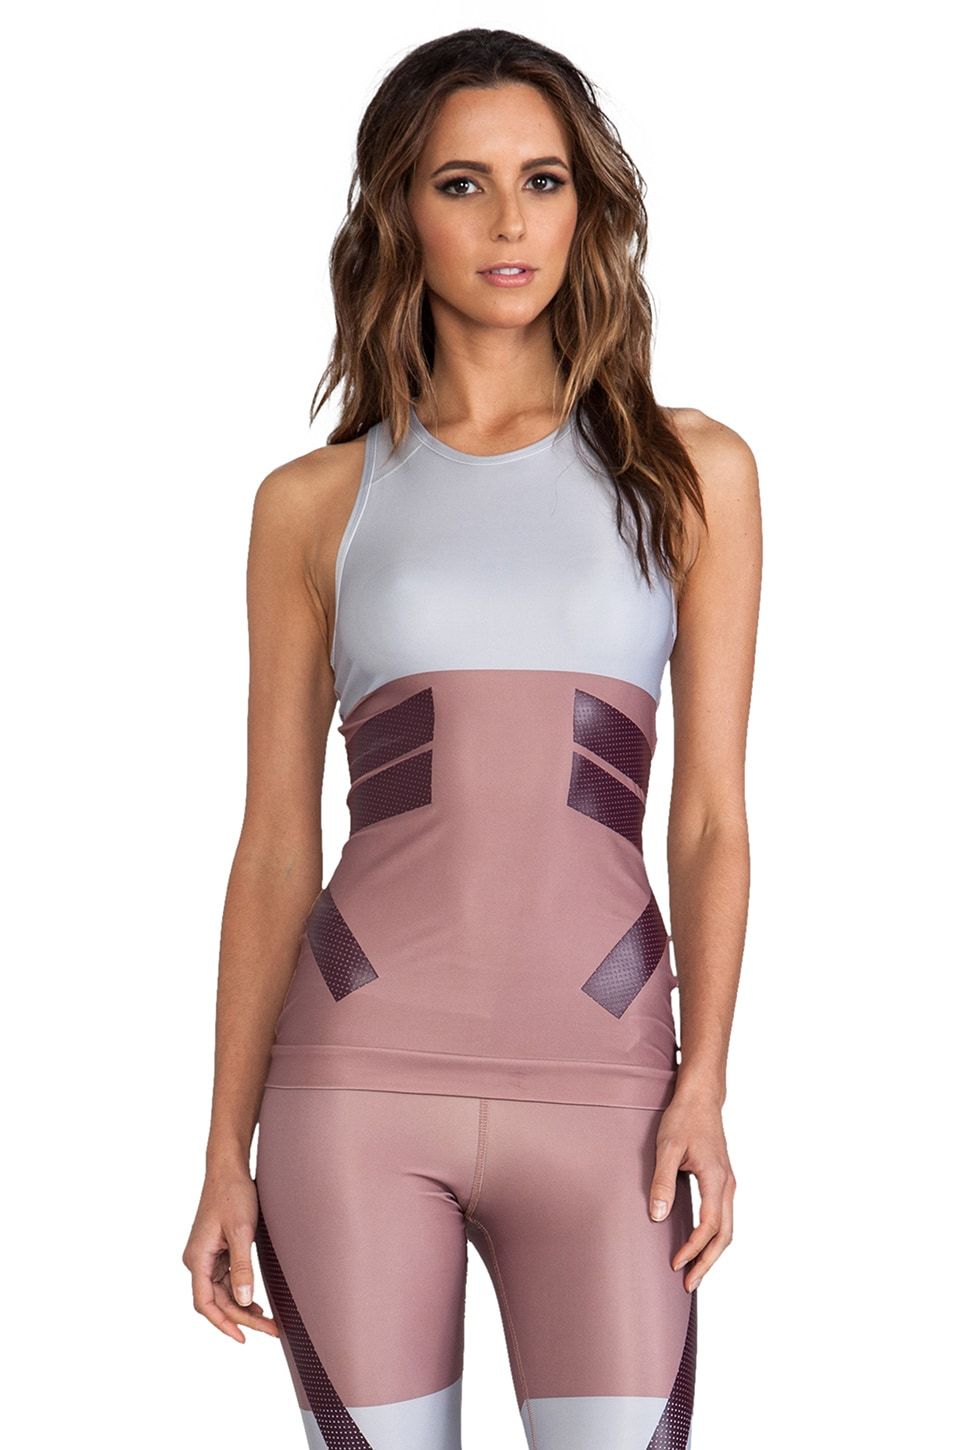 adidas by Stella McCartney Run Tech Fit Tank in Tanned Sand & Universe